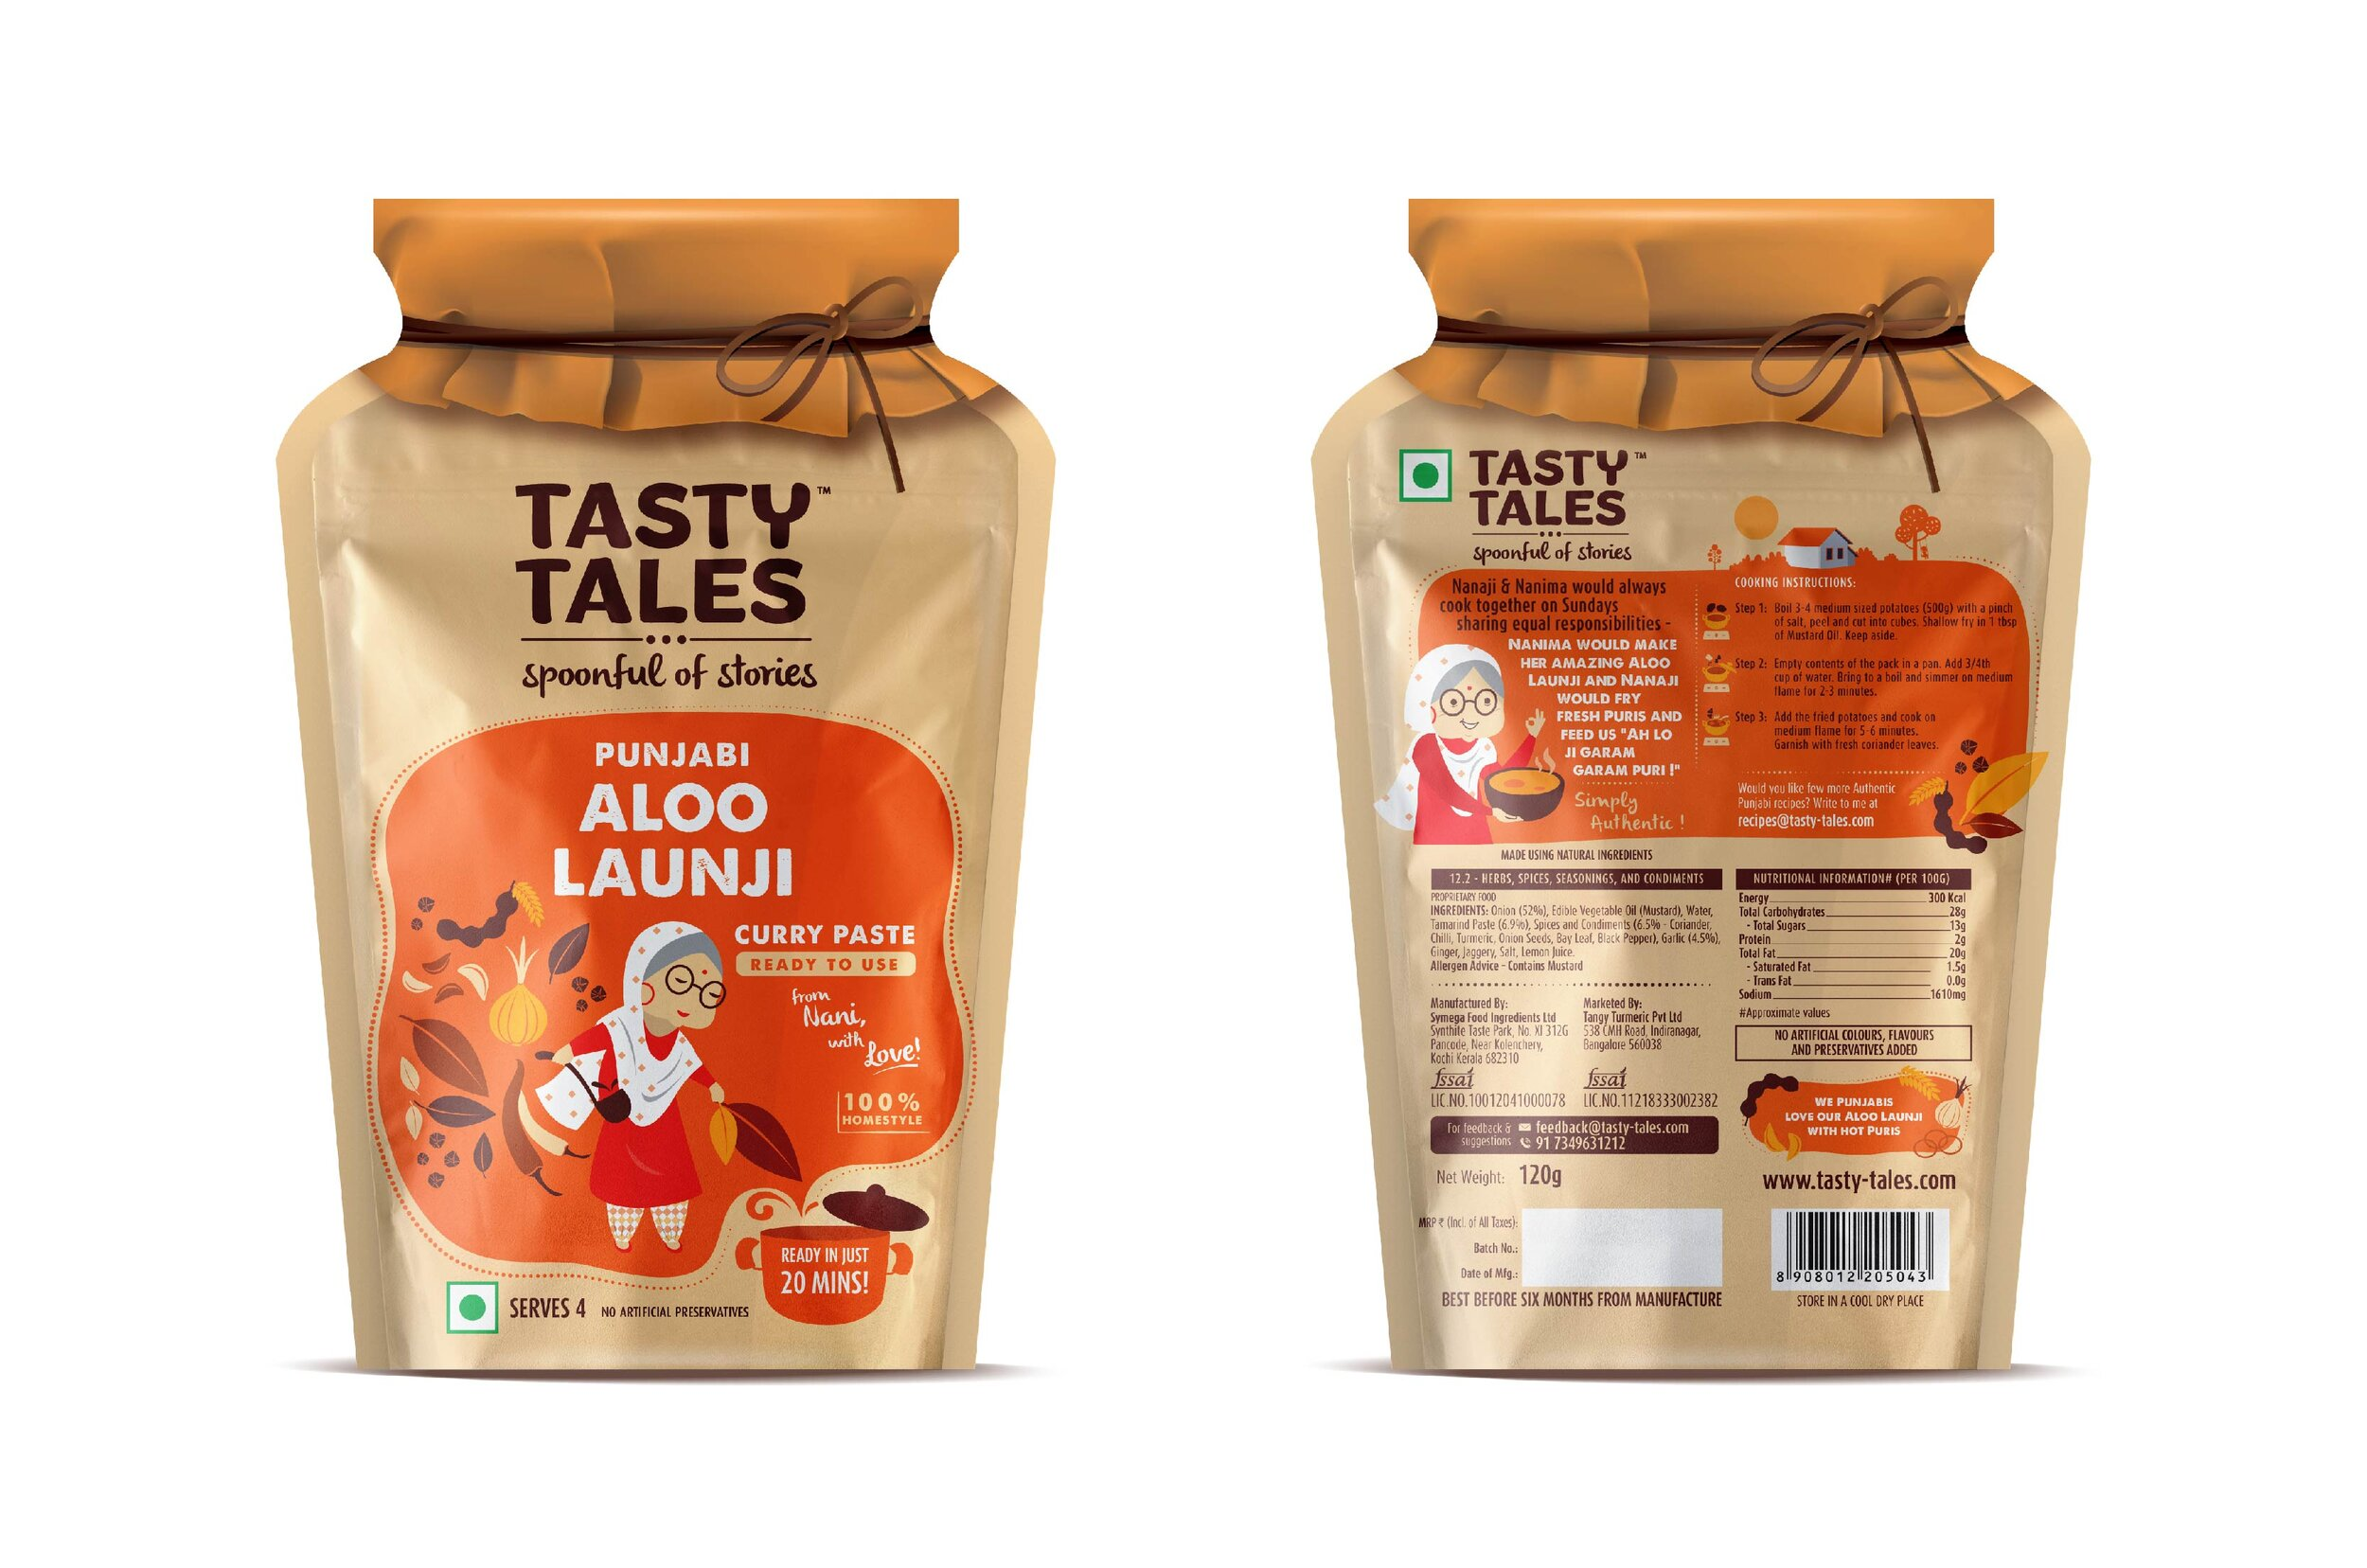 Tasty Tales_Packaging_Elephant Design 8.jpg